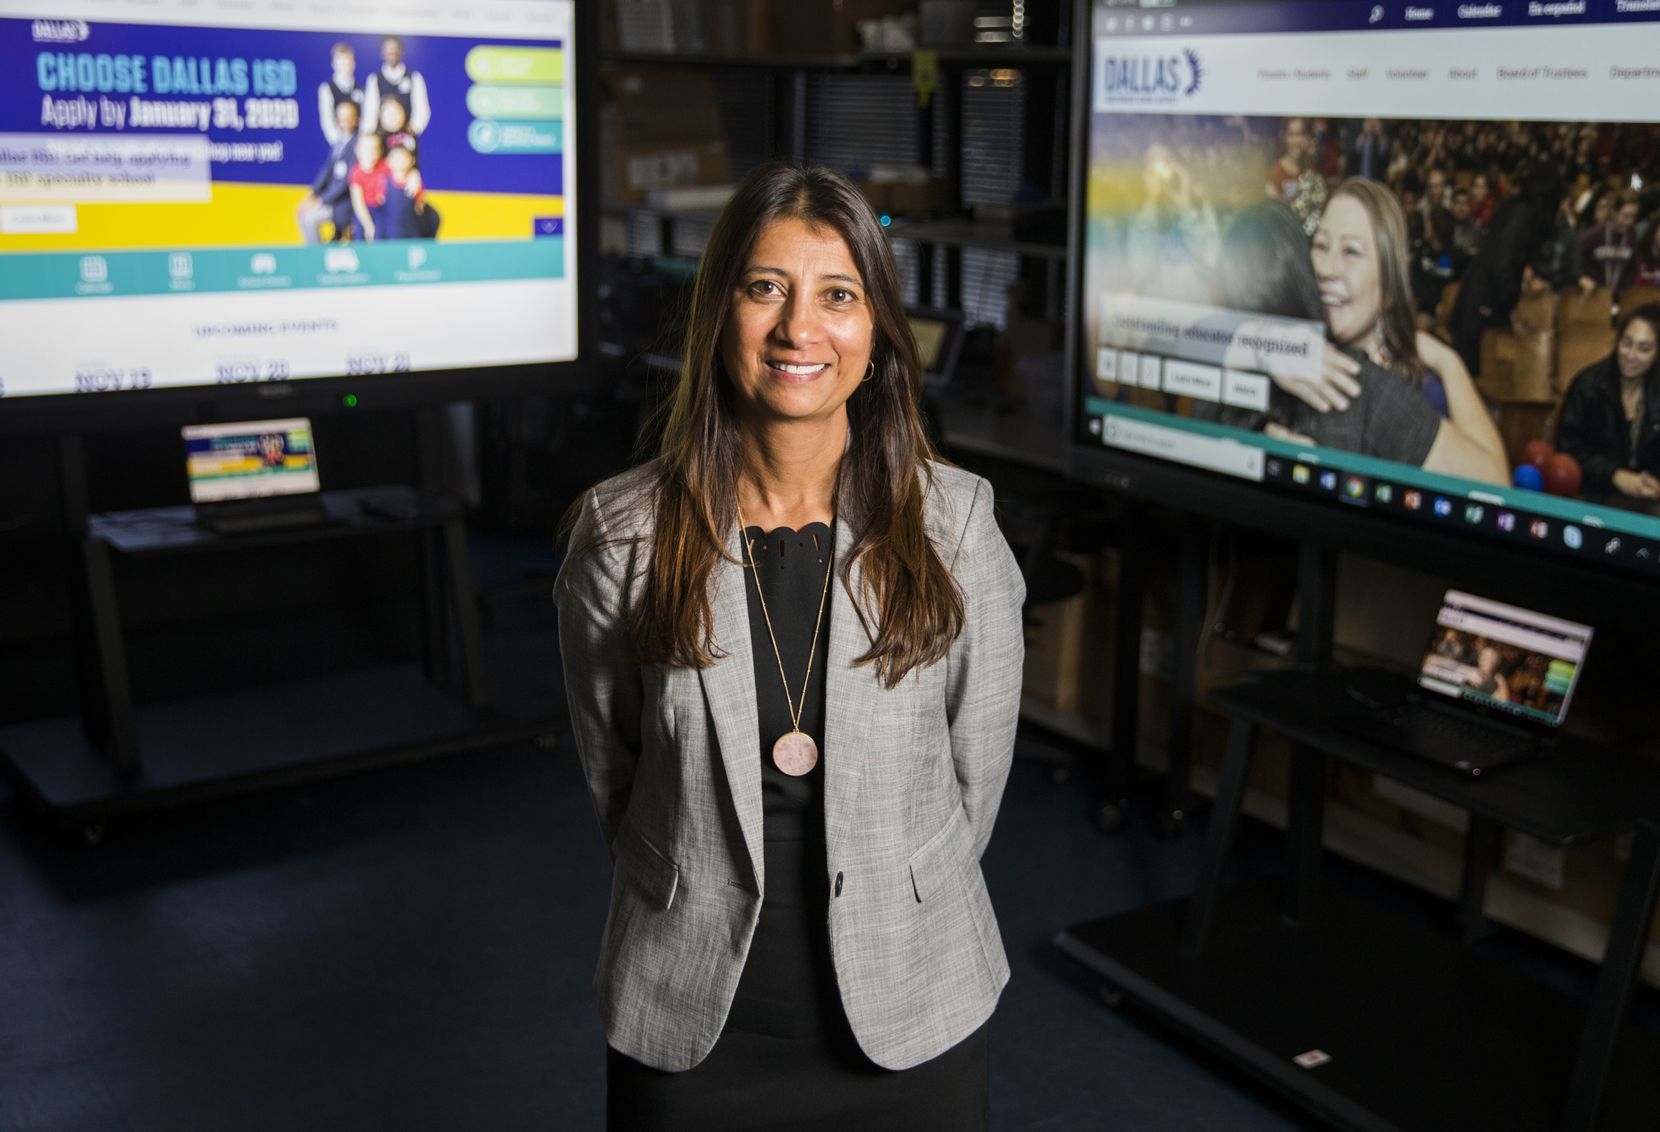 Mita Havlick, new director of the Dallas Education Foundation, poses for a portrait with large interactive touch displays at DISD headquarters Monday. The displays, along with thousands of computers, will go to classrooms damaged by last month's tornadoes.